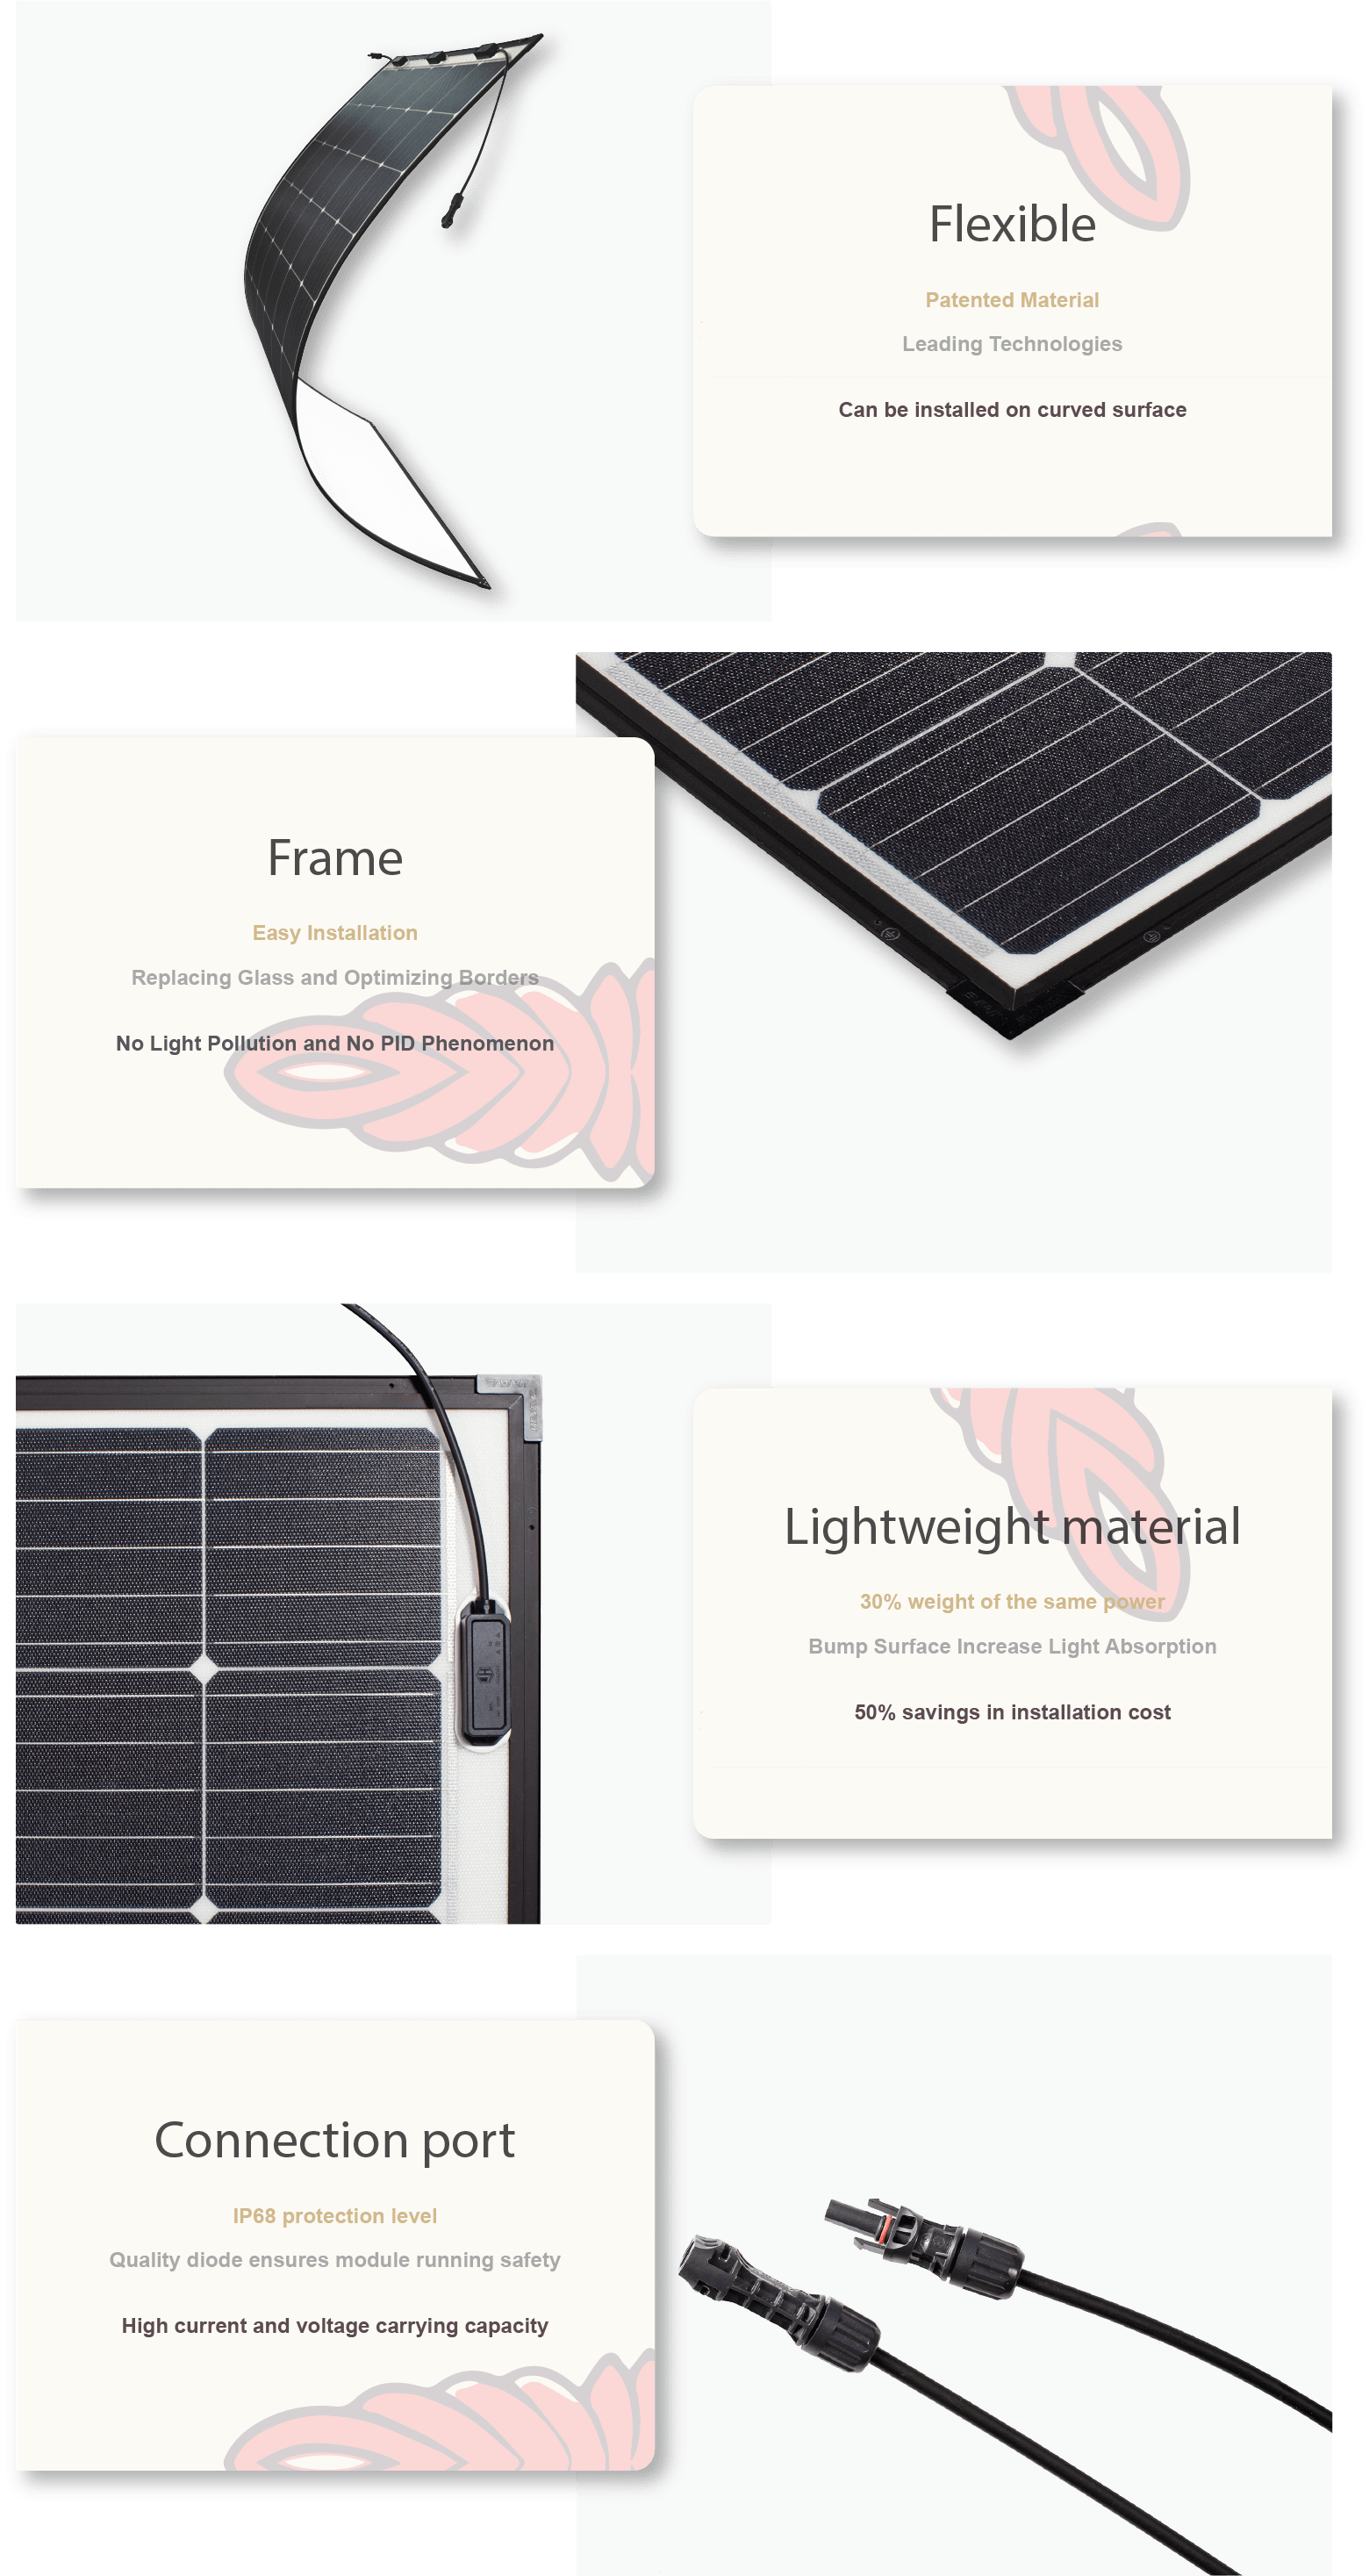 Smd Uw 290w Flexible Solar Panel For Light Weight Roof Tpo